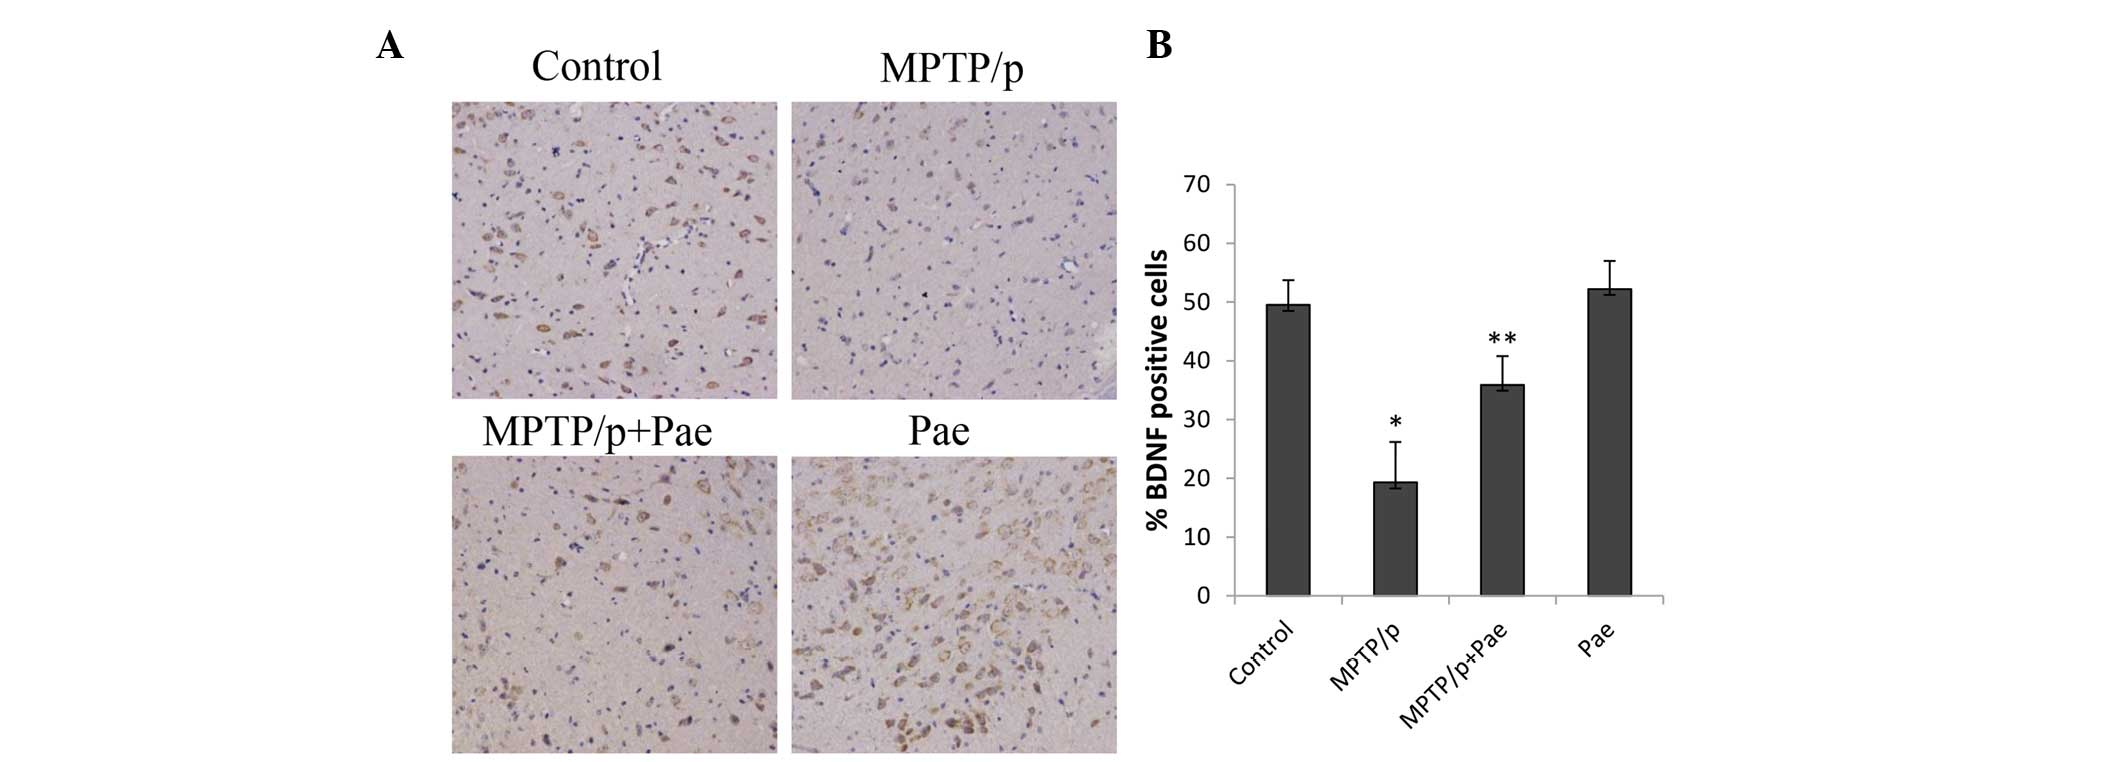 Therapeutic effects of paeonol on methyl-4-phenyl-1,2,3,6